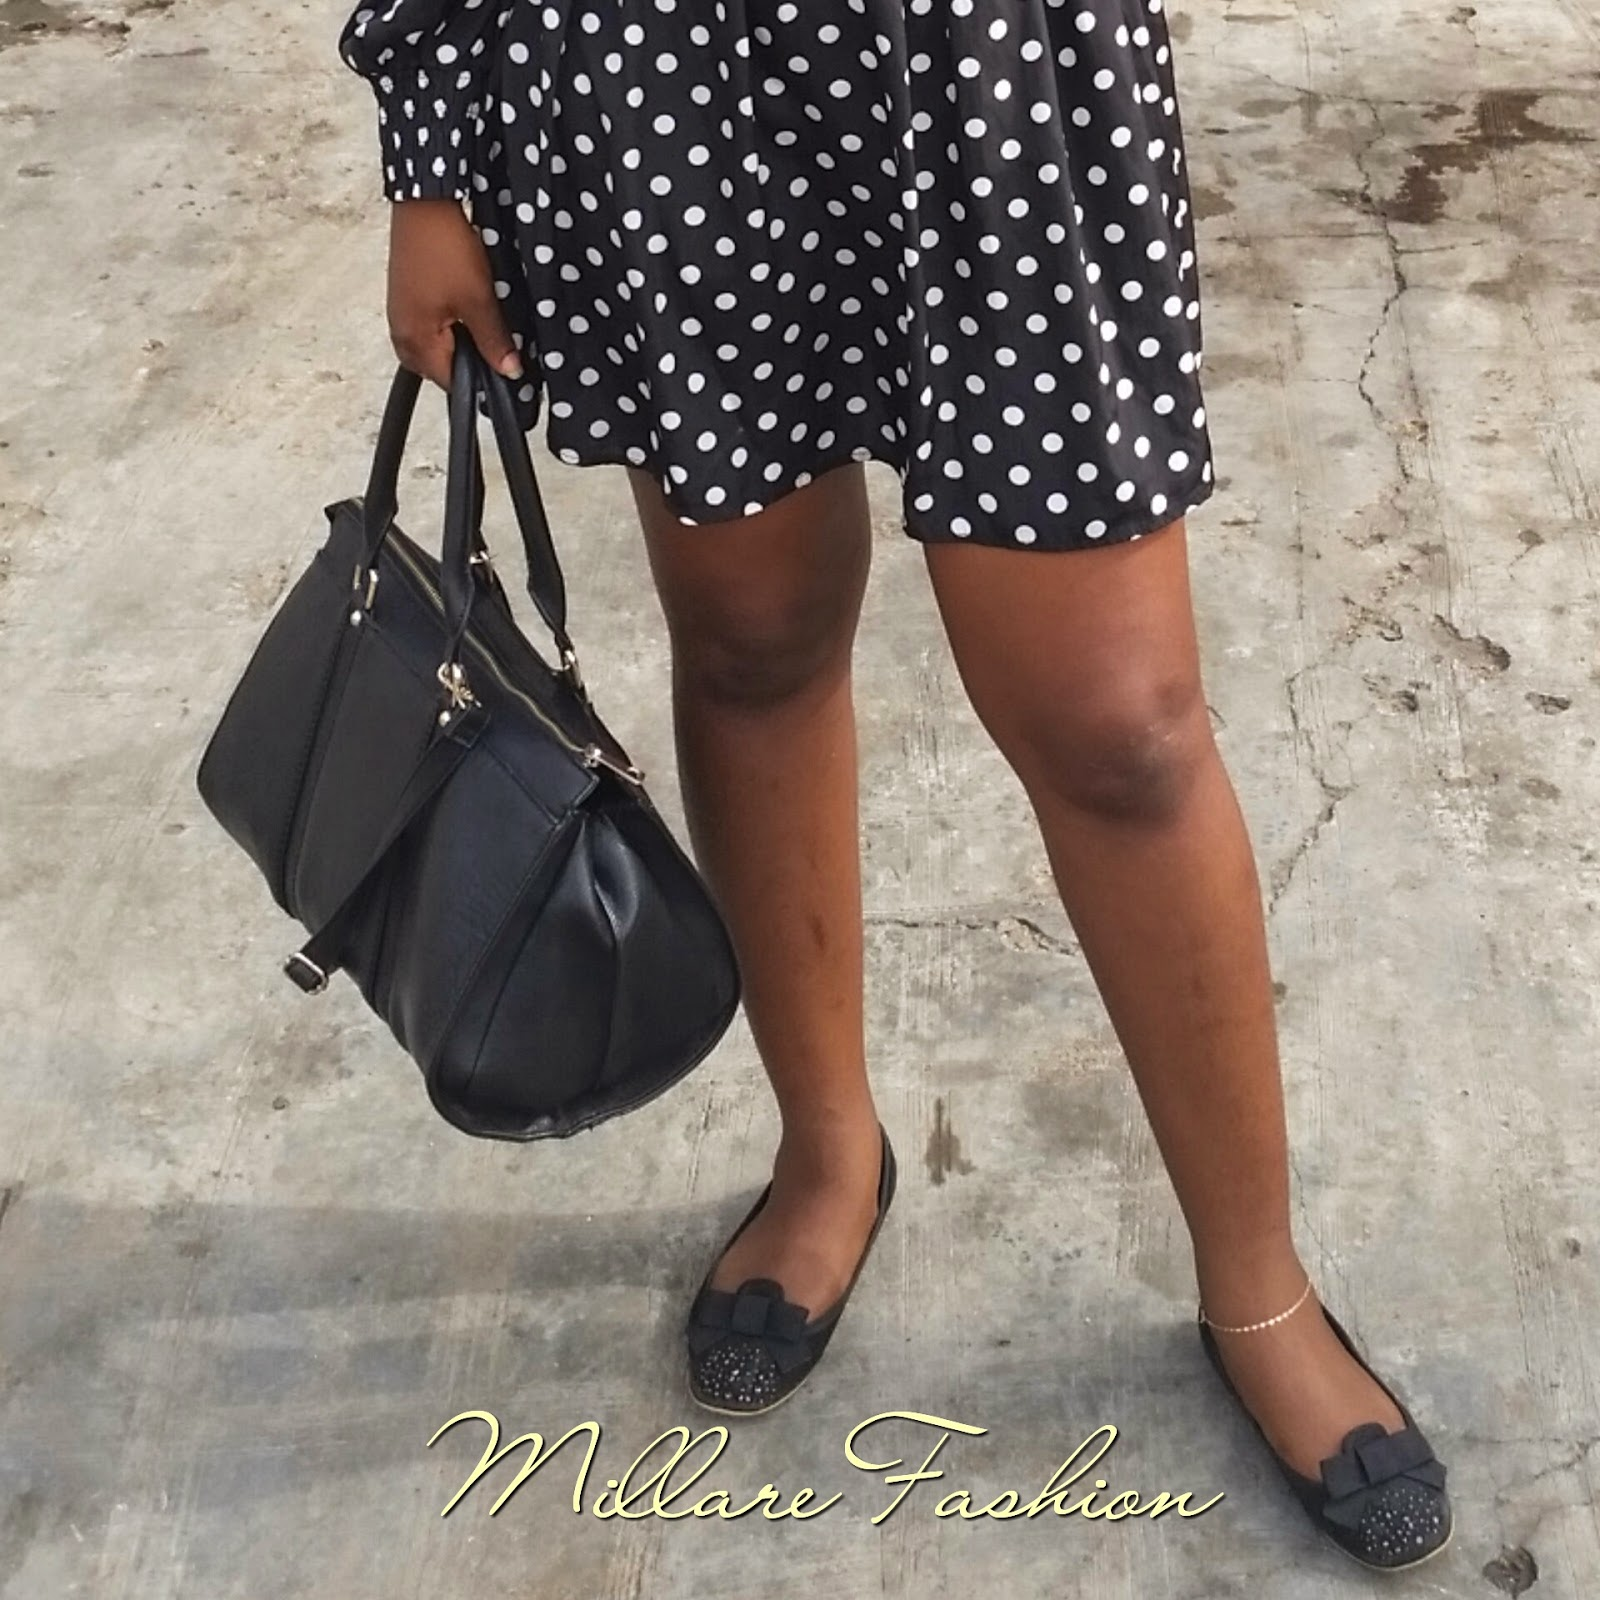 www.millarefashion.blogspot.com